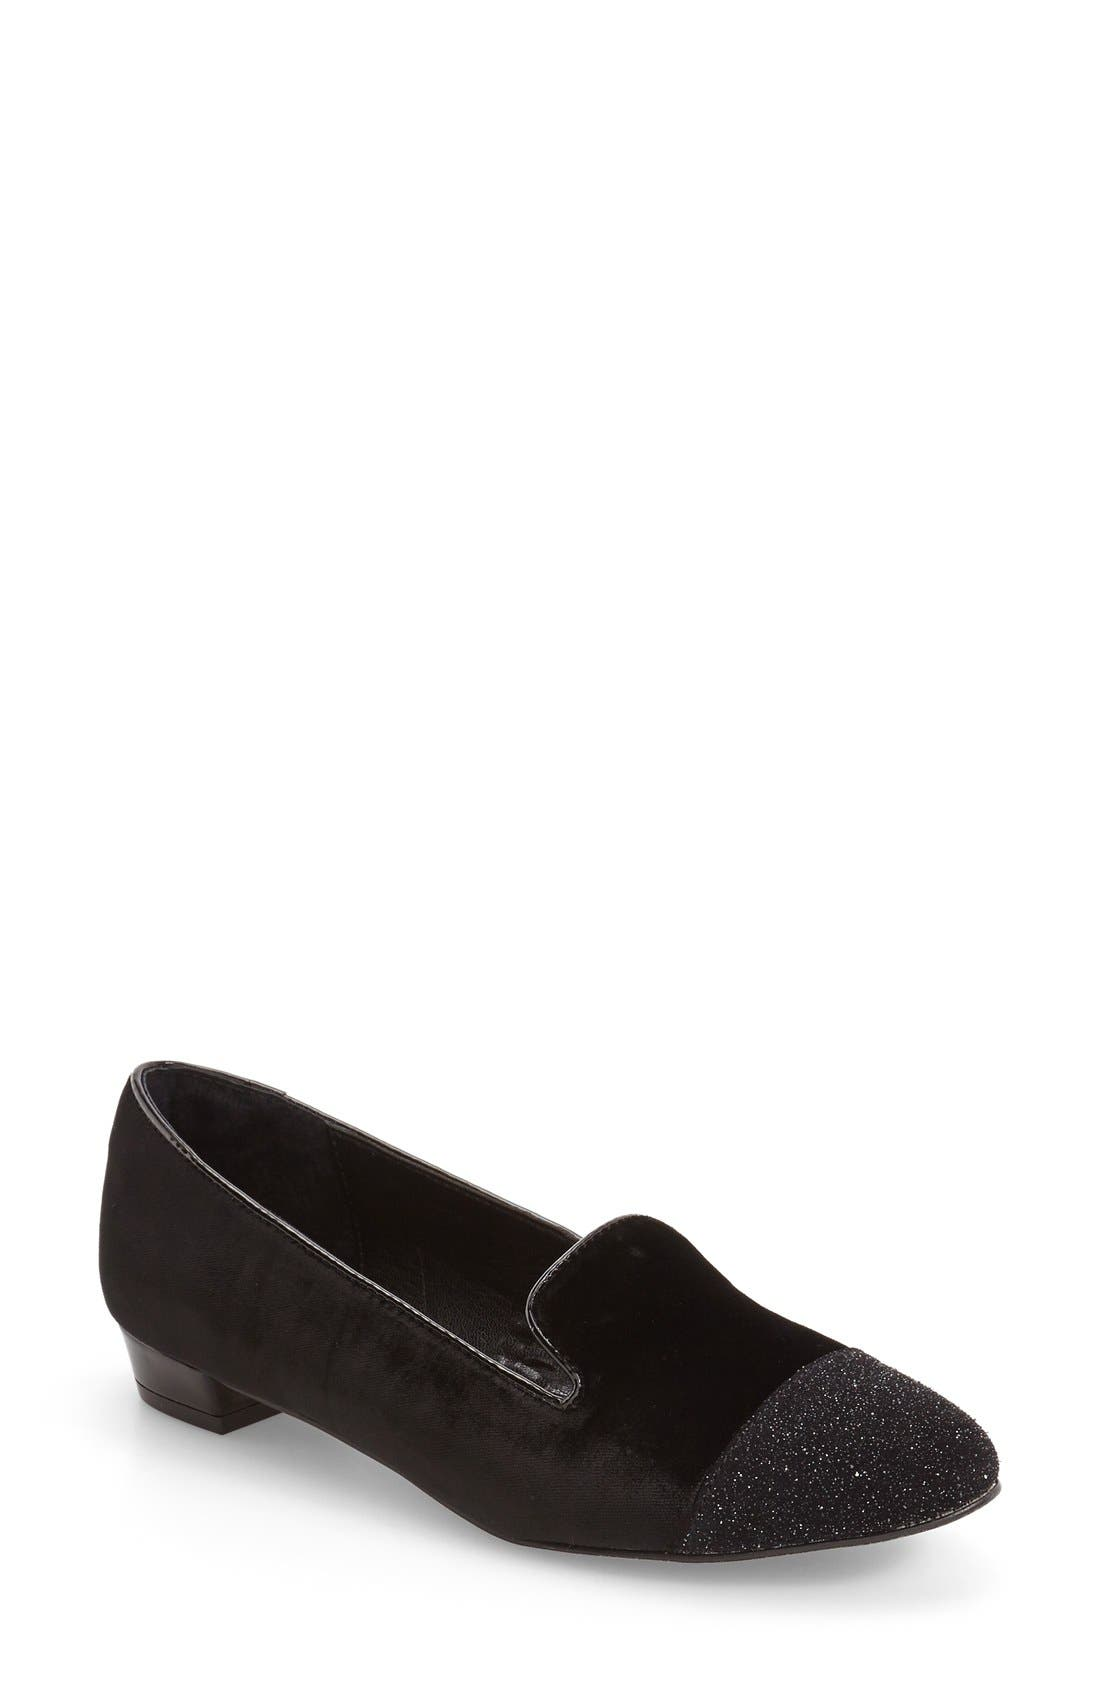 Isola Coventry Cap Toe Loafer (Women's) PHsiTcuE